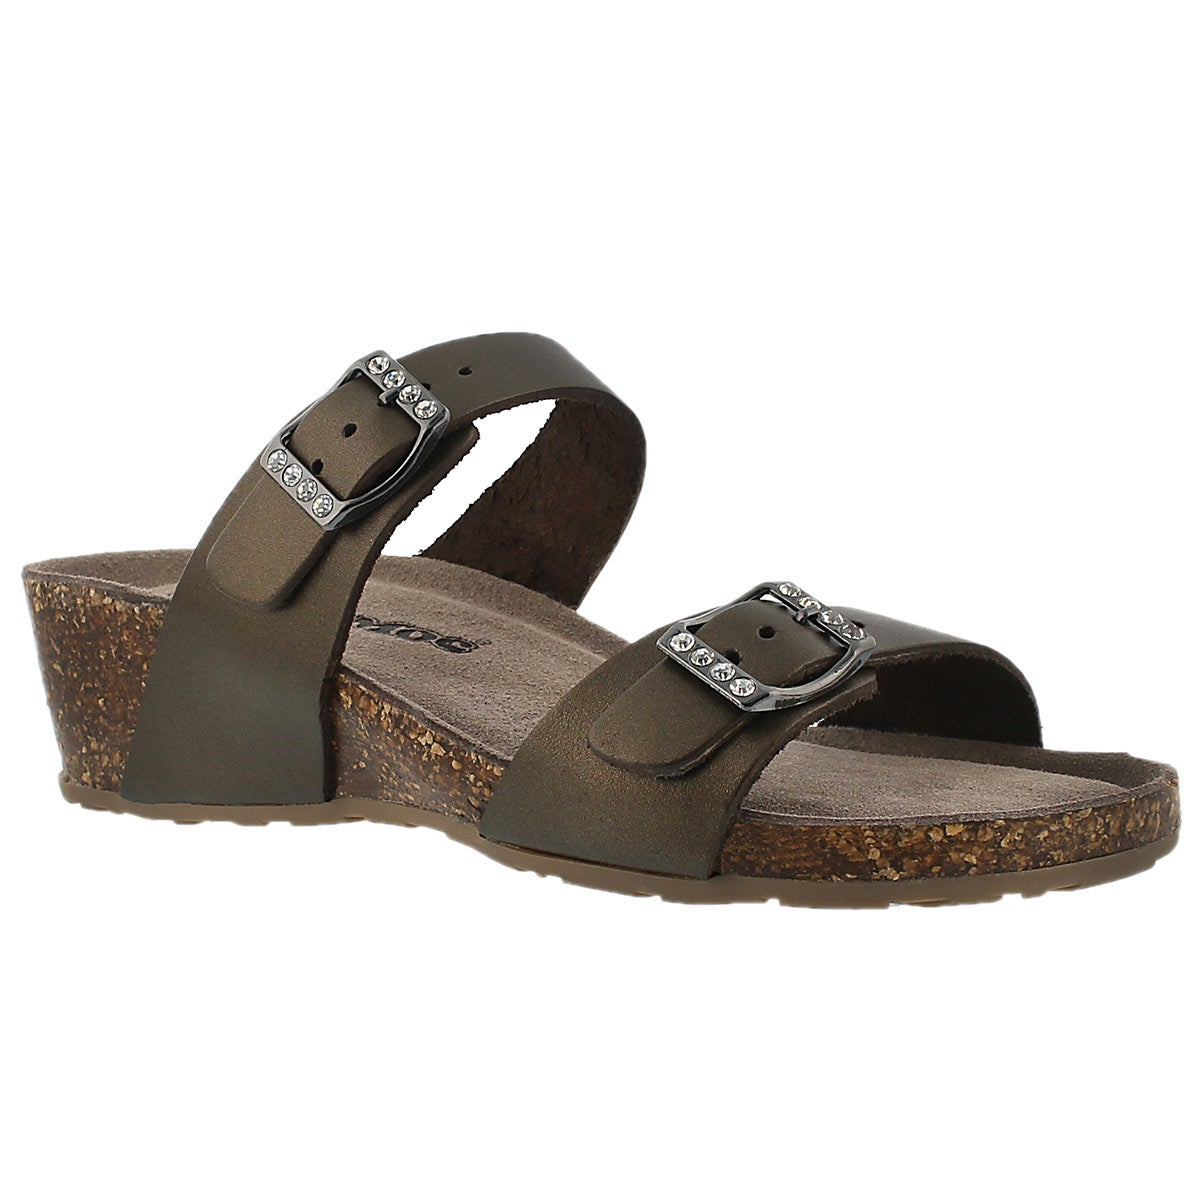 Women's ASHLYNN 2 gold memory foam sandals